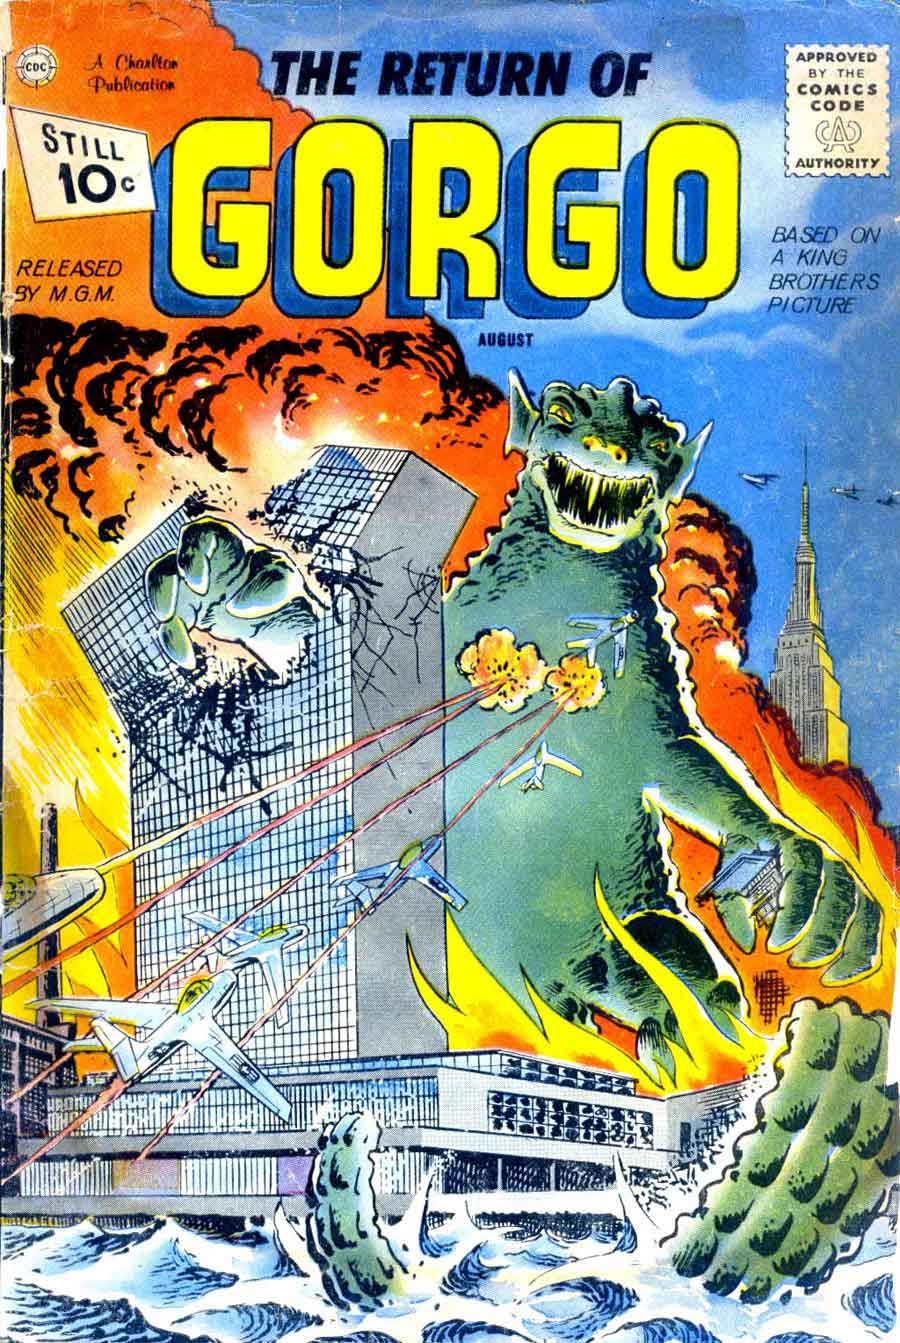 Gorgo v1 #2 charlton monster comic book cover art by Steve Ditko